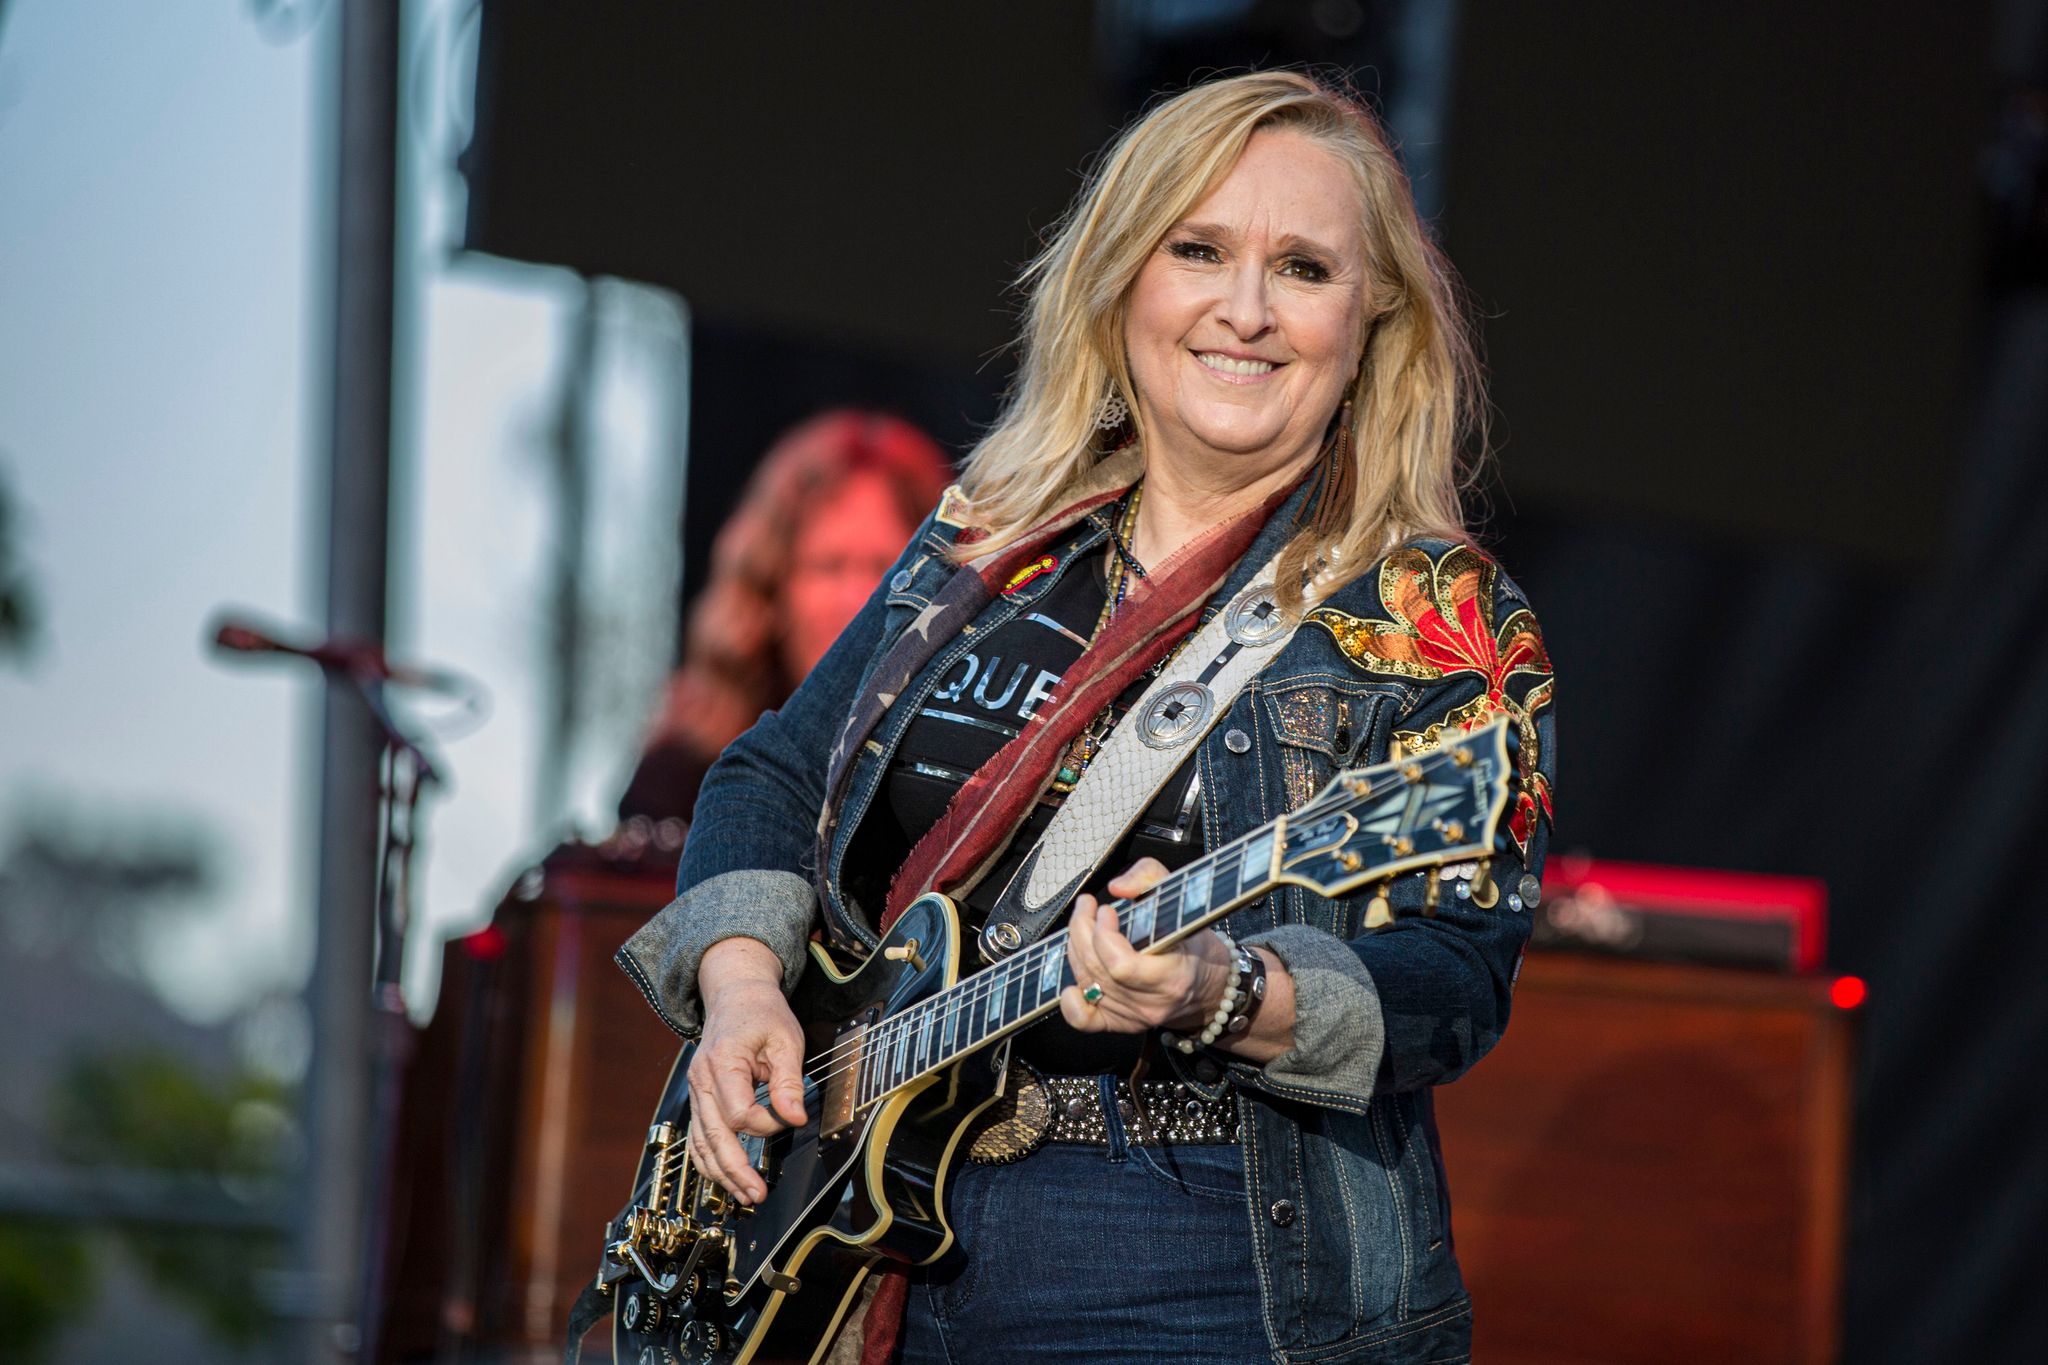 Musician Melissa Etheridge performs on stage at San Diego Pride Festival 2019| Photo: Getty Images